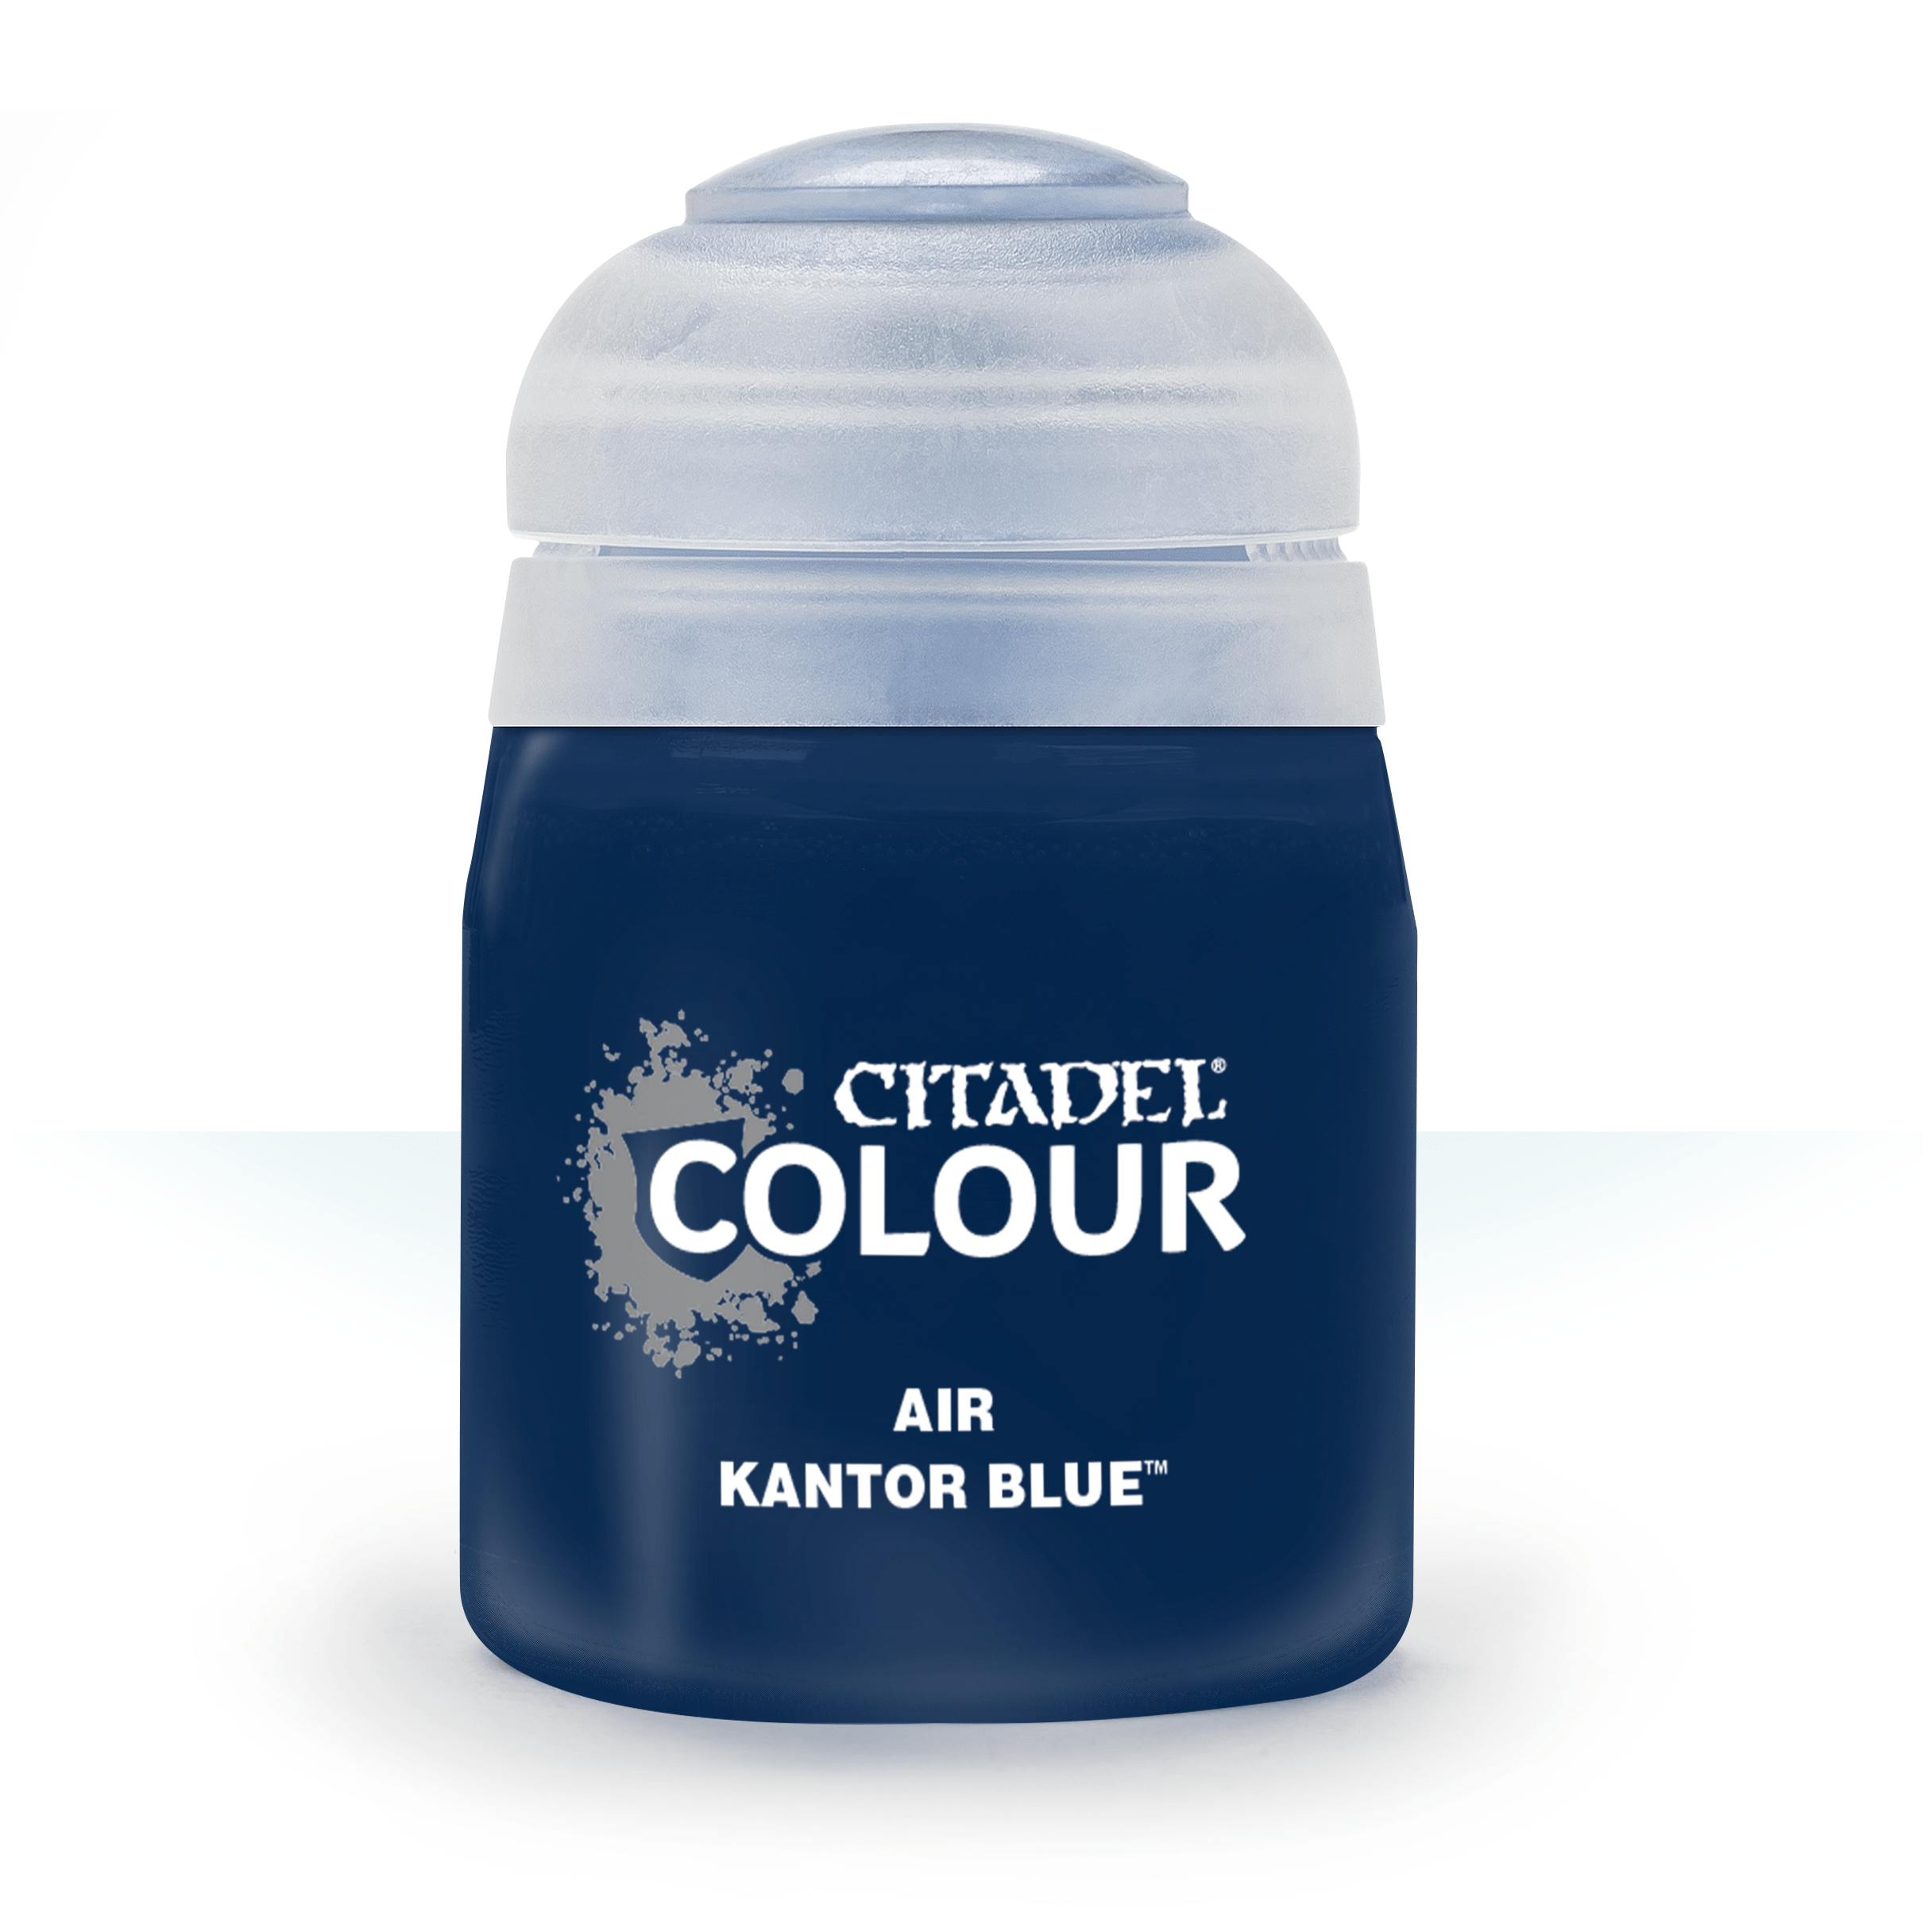 Citadel Airbrush Paints: Kantor Blue Air (24ML)